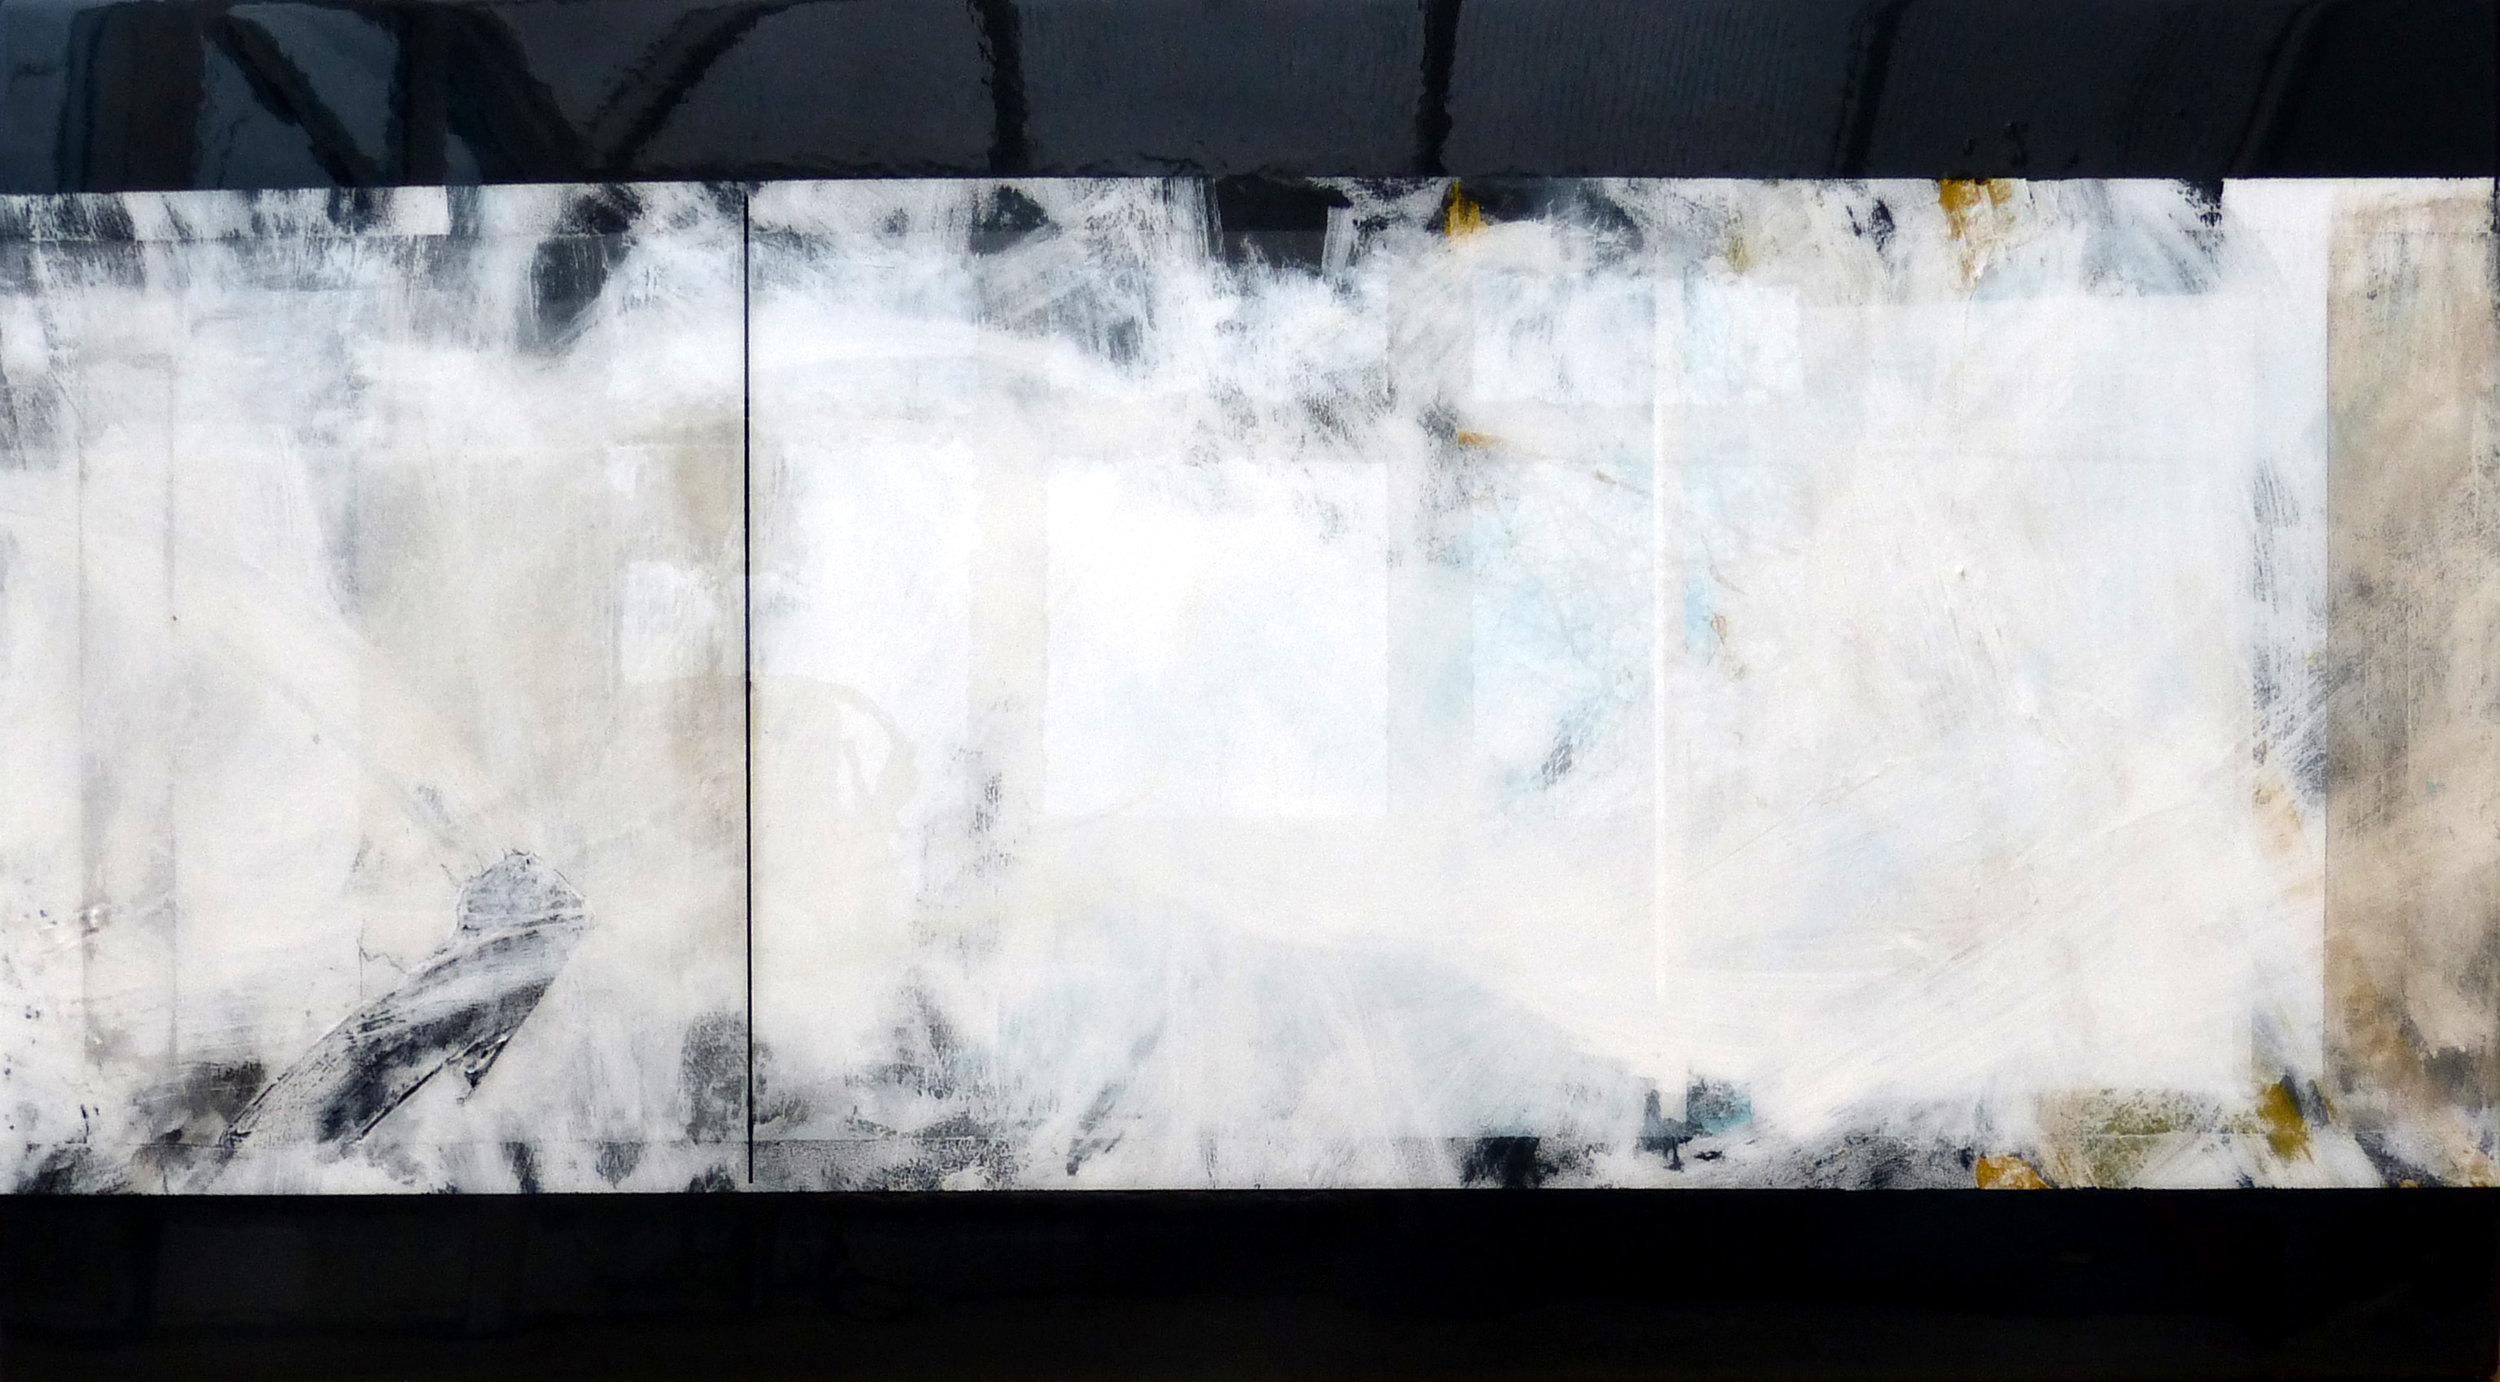 SEA WALL 102x54cm | mixed media on board with high gloss epoxy resin |  £1,900.00 |